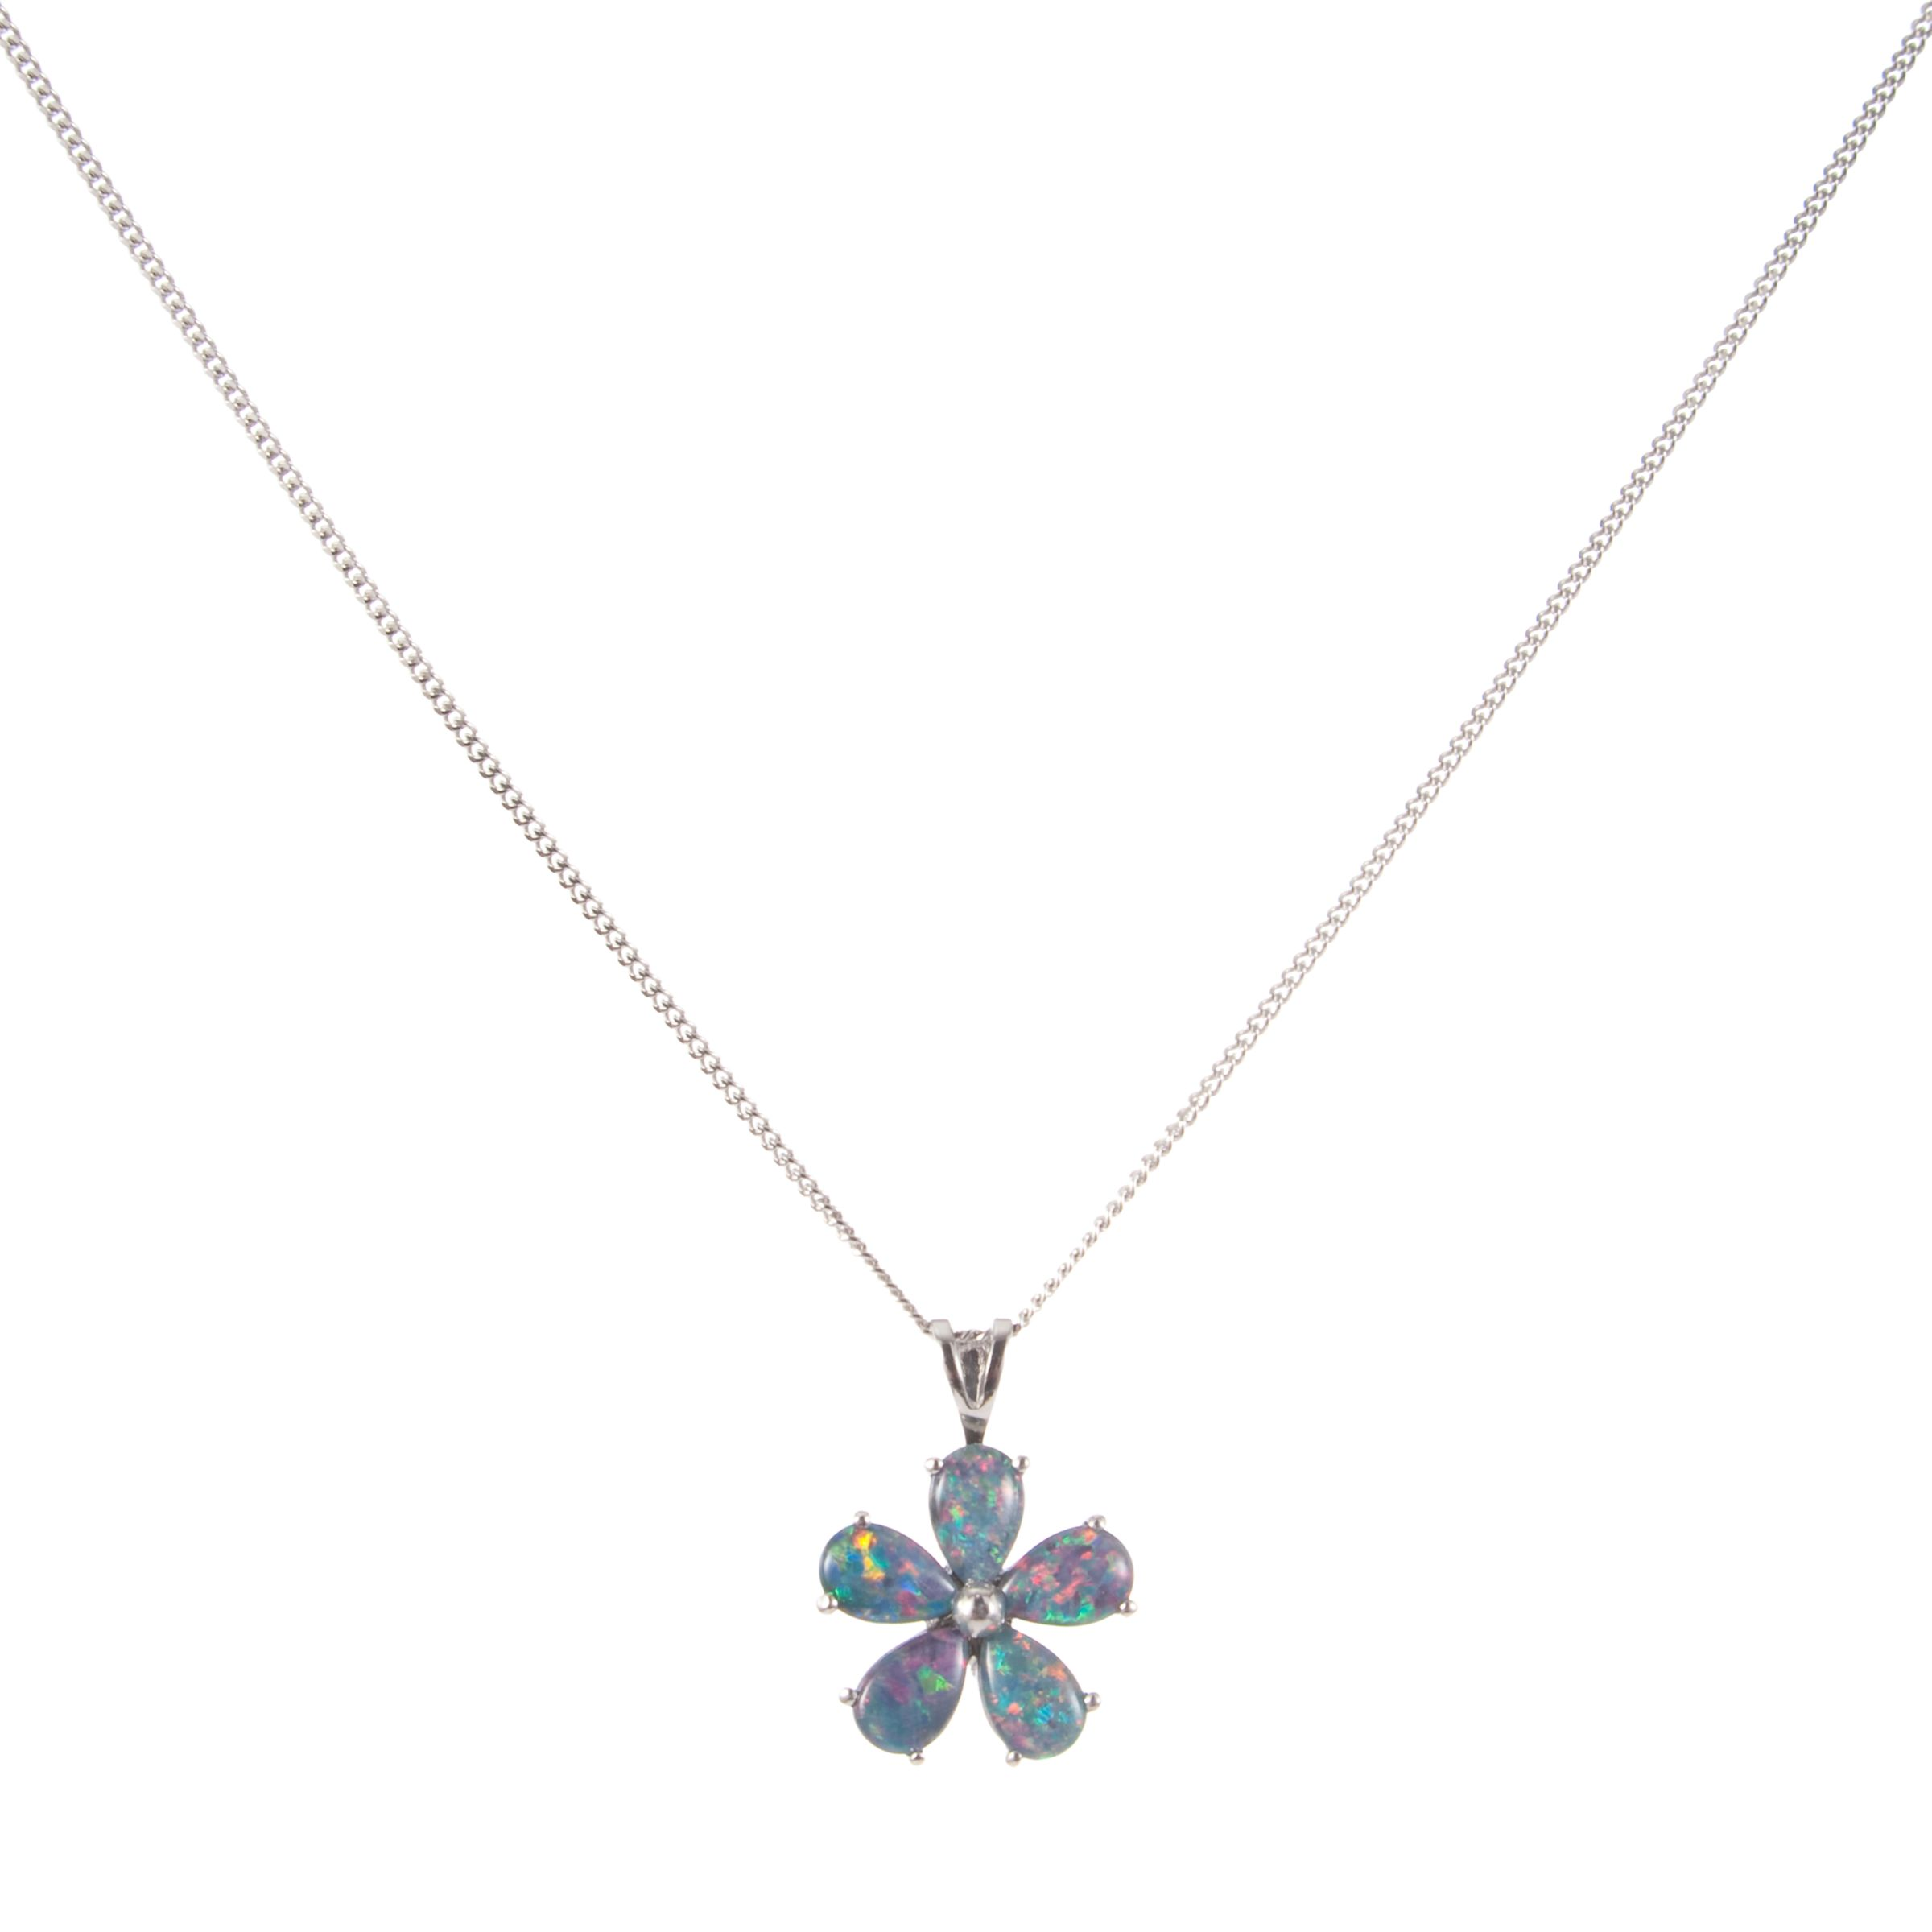 9ct White Gold Opal Daisy Pendant Necklace